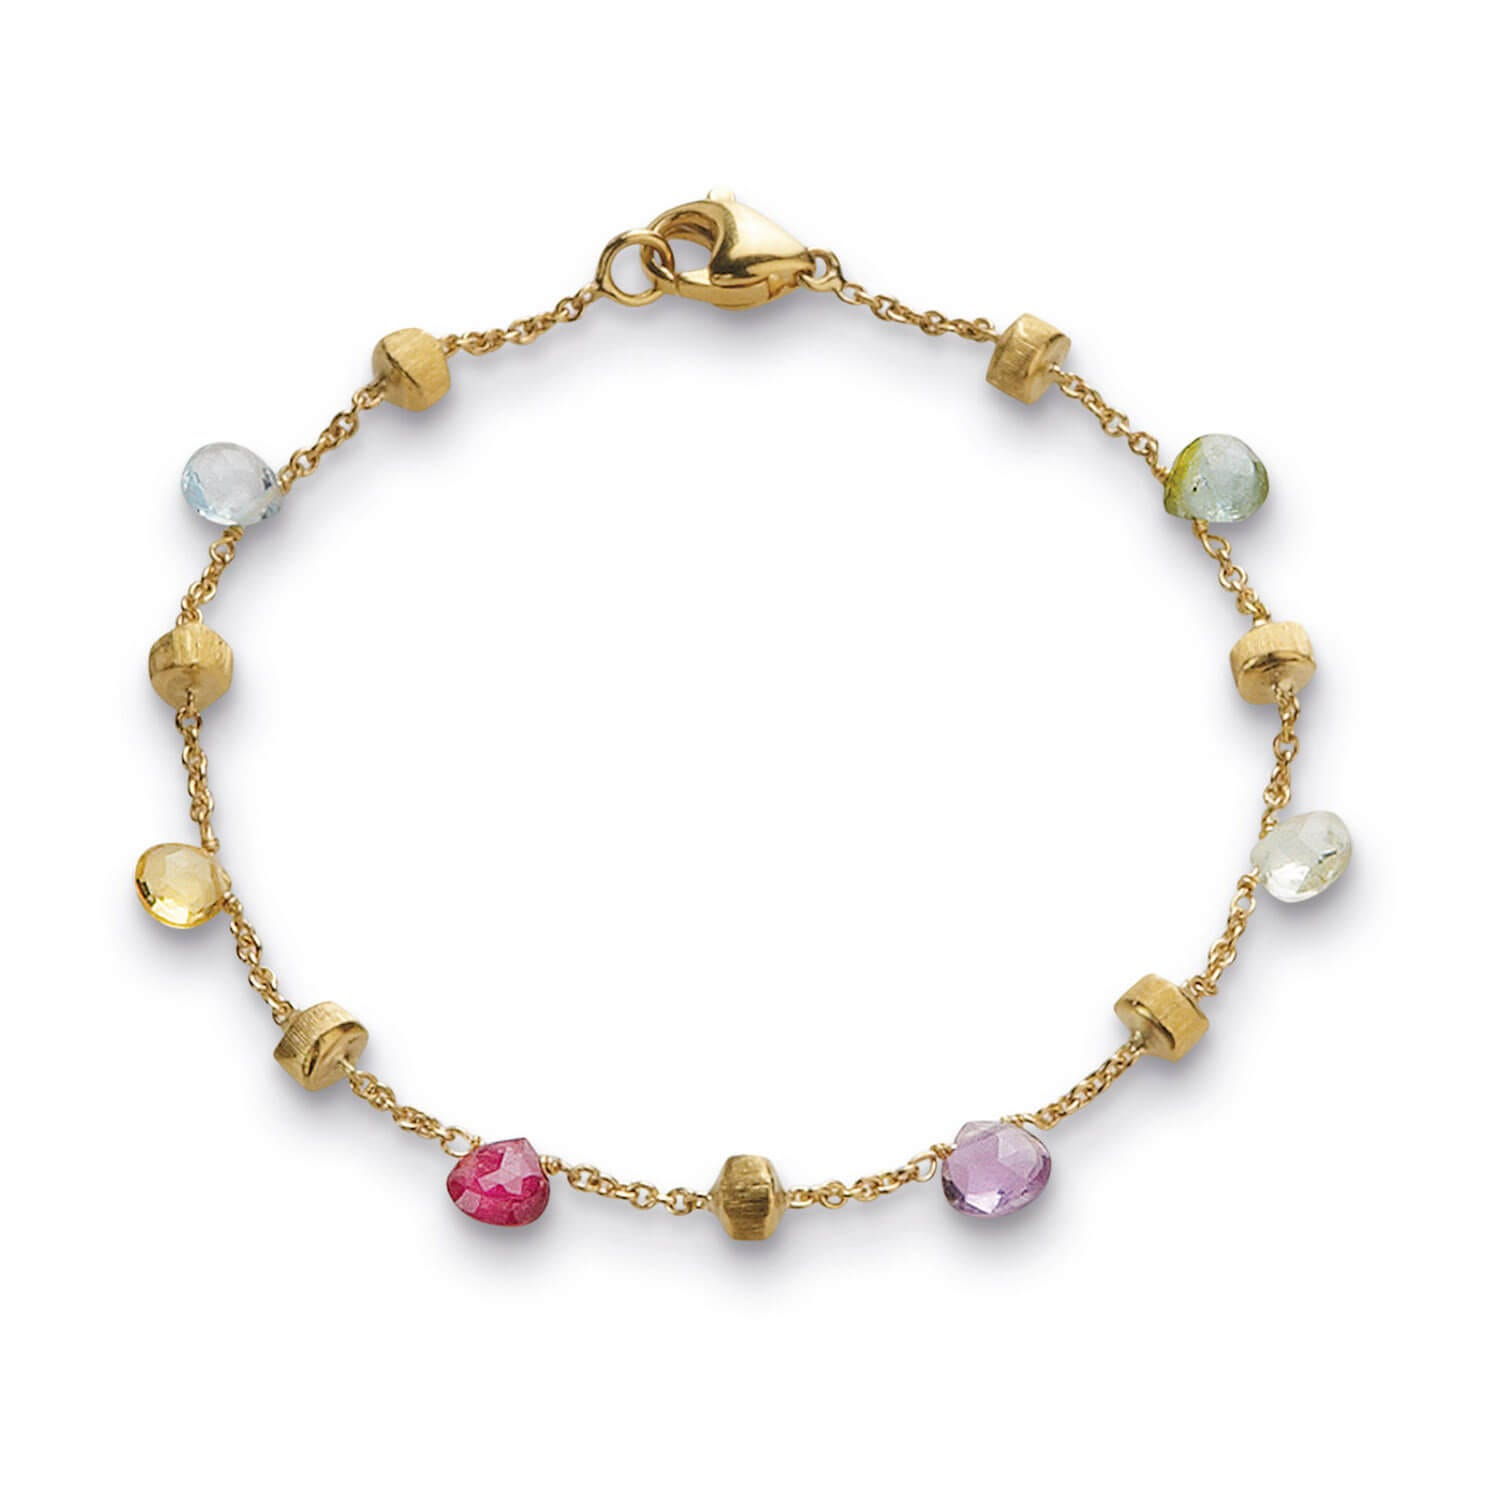 Marco Bicego Paradise 18ct Yellow Gold and Mixed Stone Single Strand Bracelet